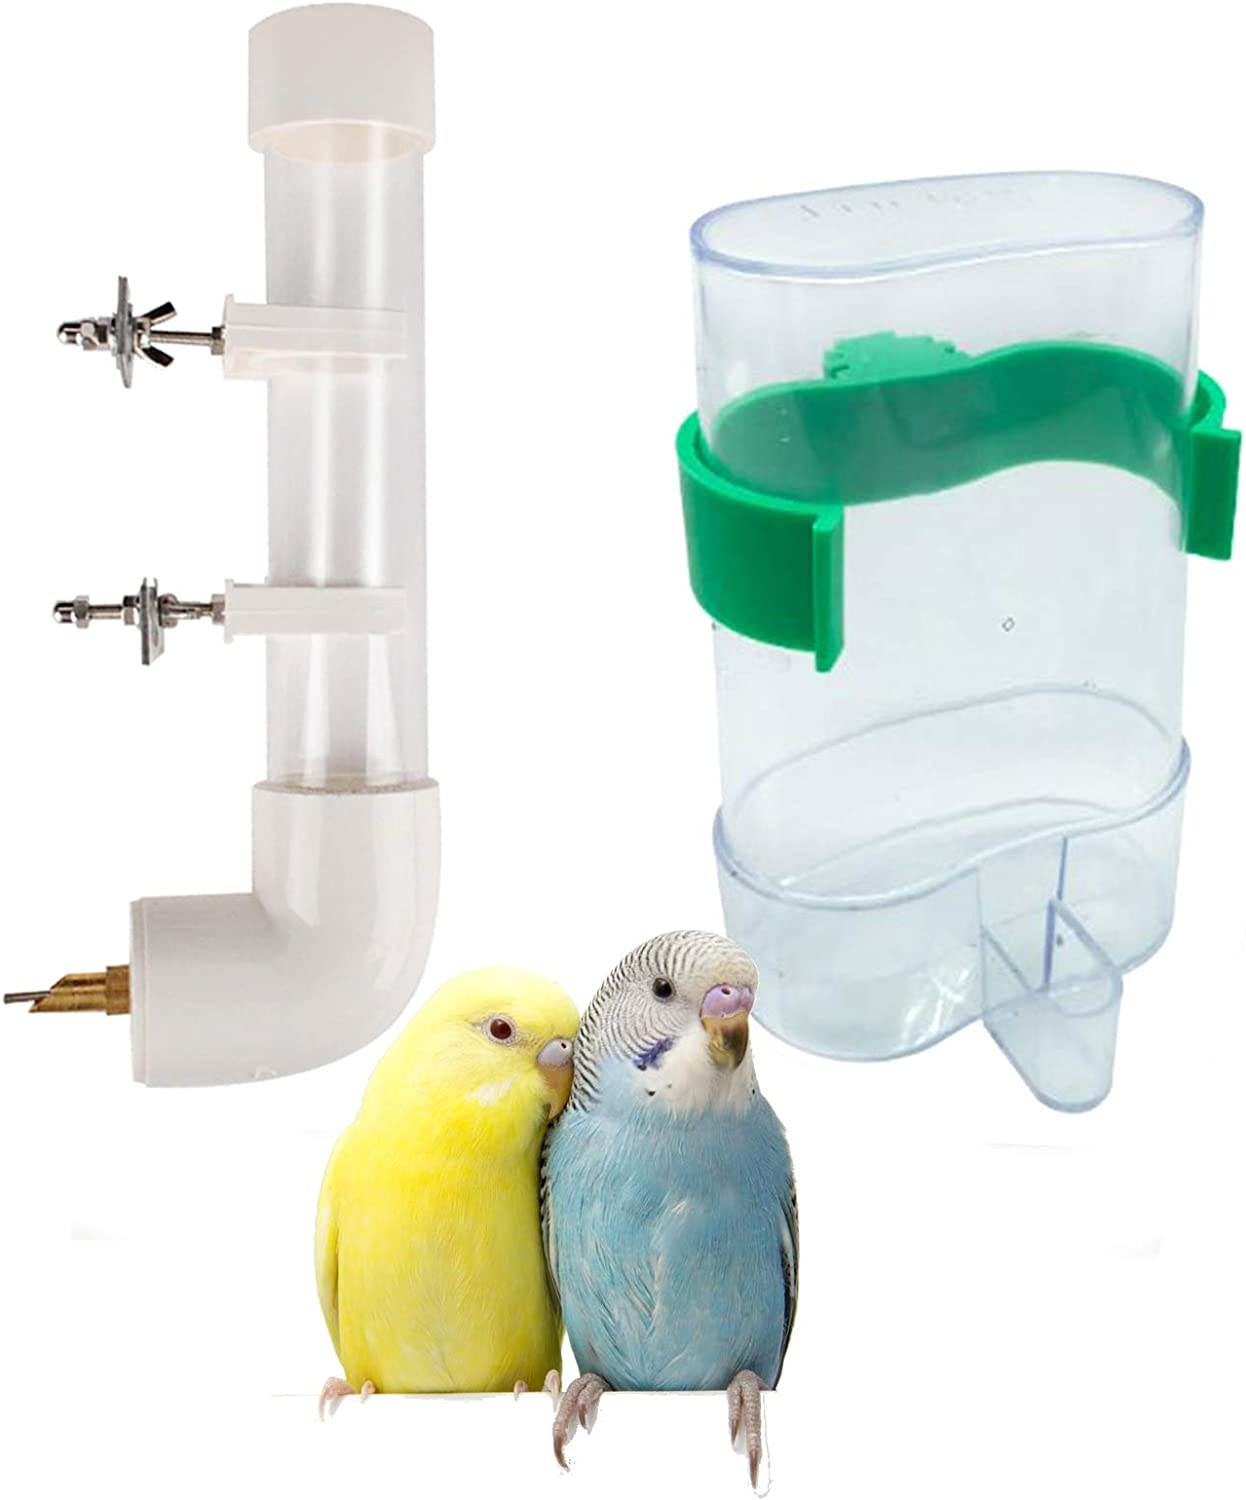 Hamiledyi 2 Pcs Automatic Parrot Feeder Drinker Hanging Spill-Proof Water Cup Feeder Food Feeding Automatic Feeding Hanginig Plastic for Budgies Finch and Other Bird Rabbit Mice